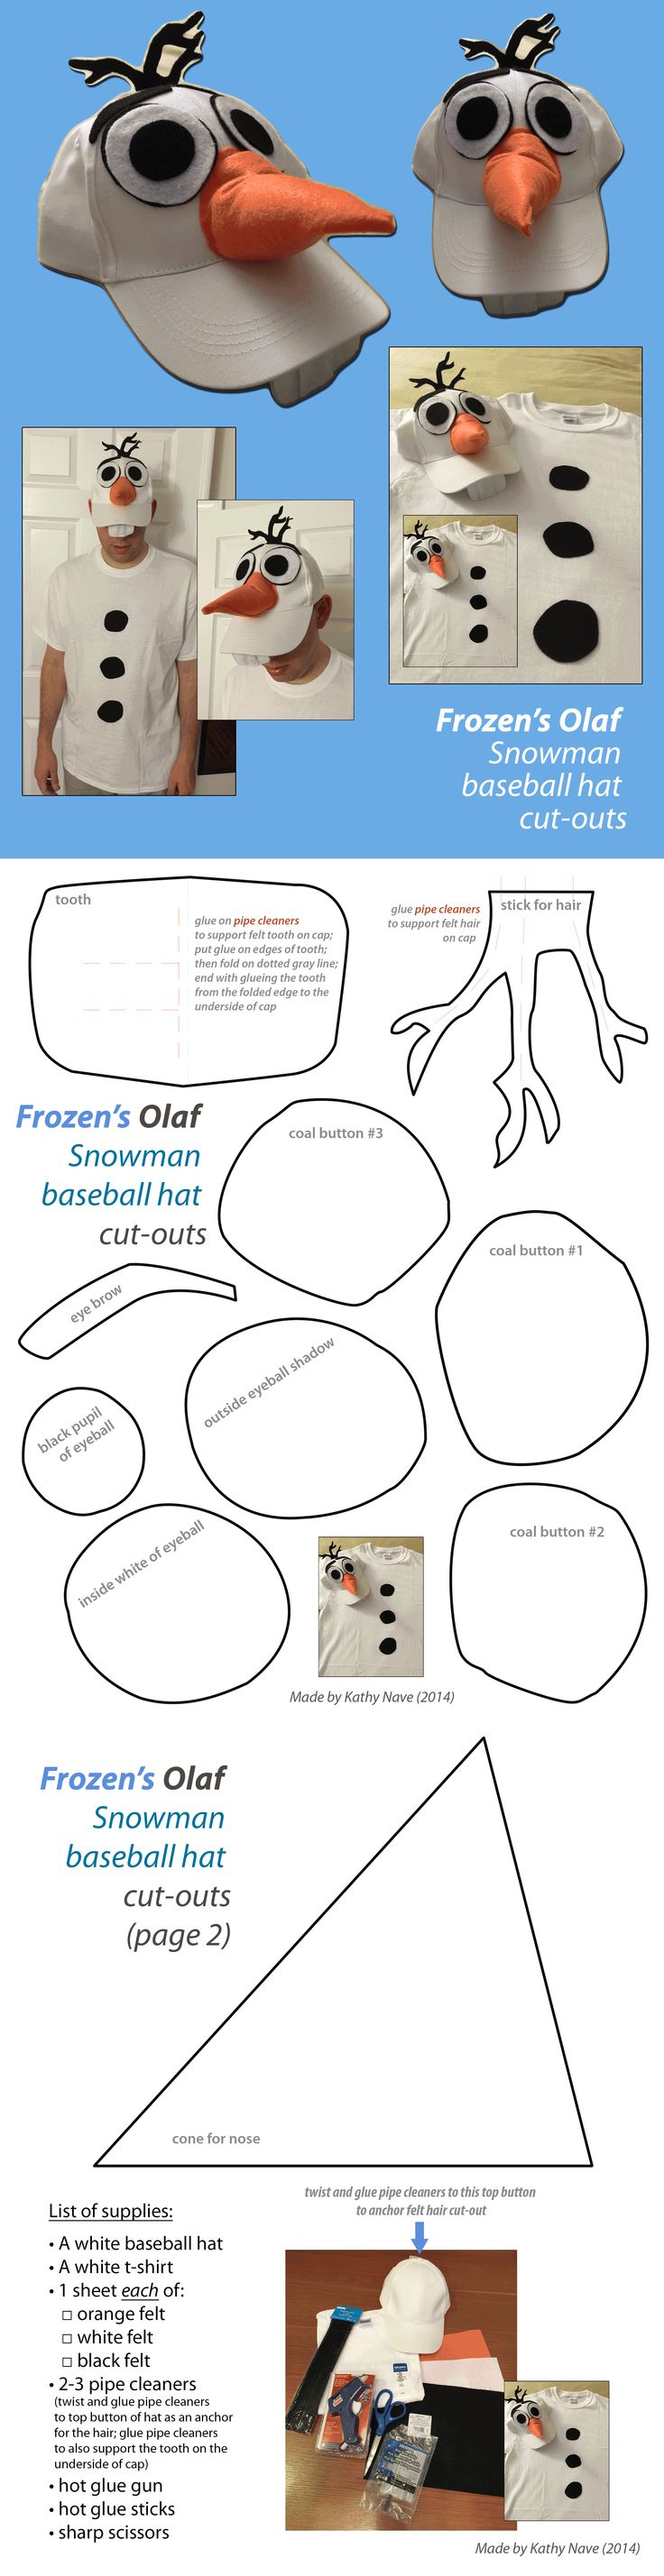 How to DIY/make Disney's Frozen Olaf Snowman baseball hat and t-shirt costume (high res file)